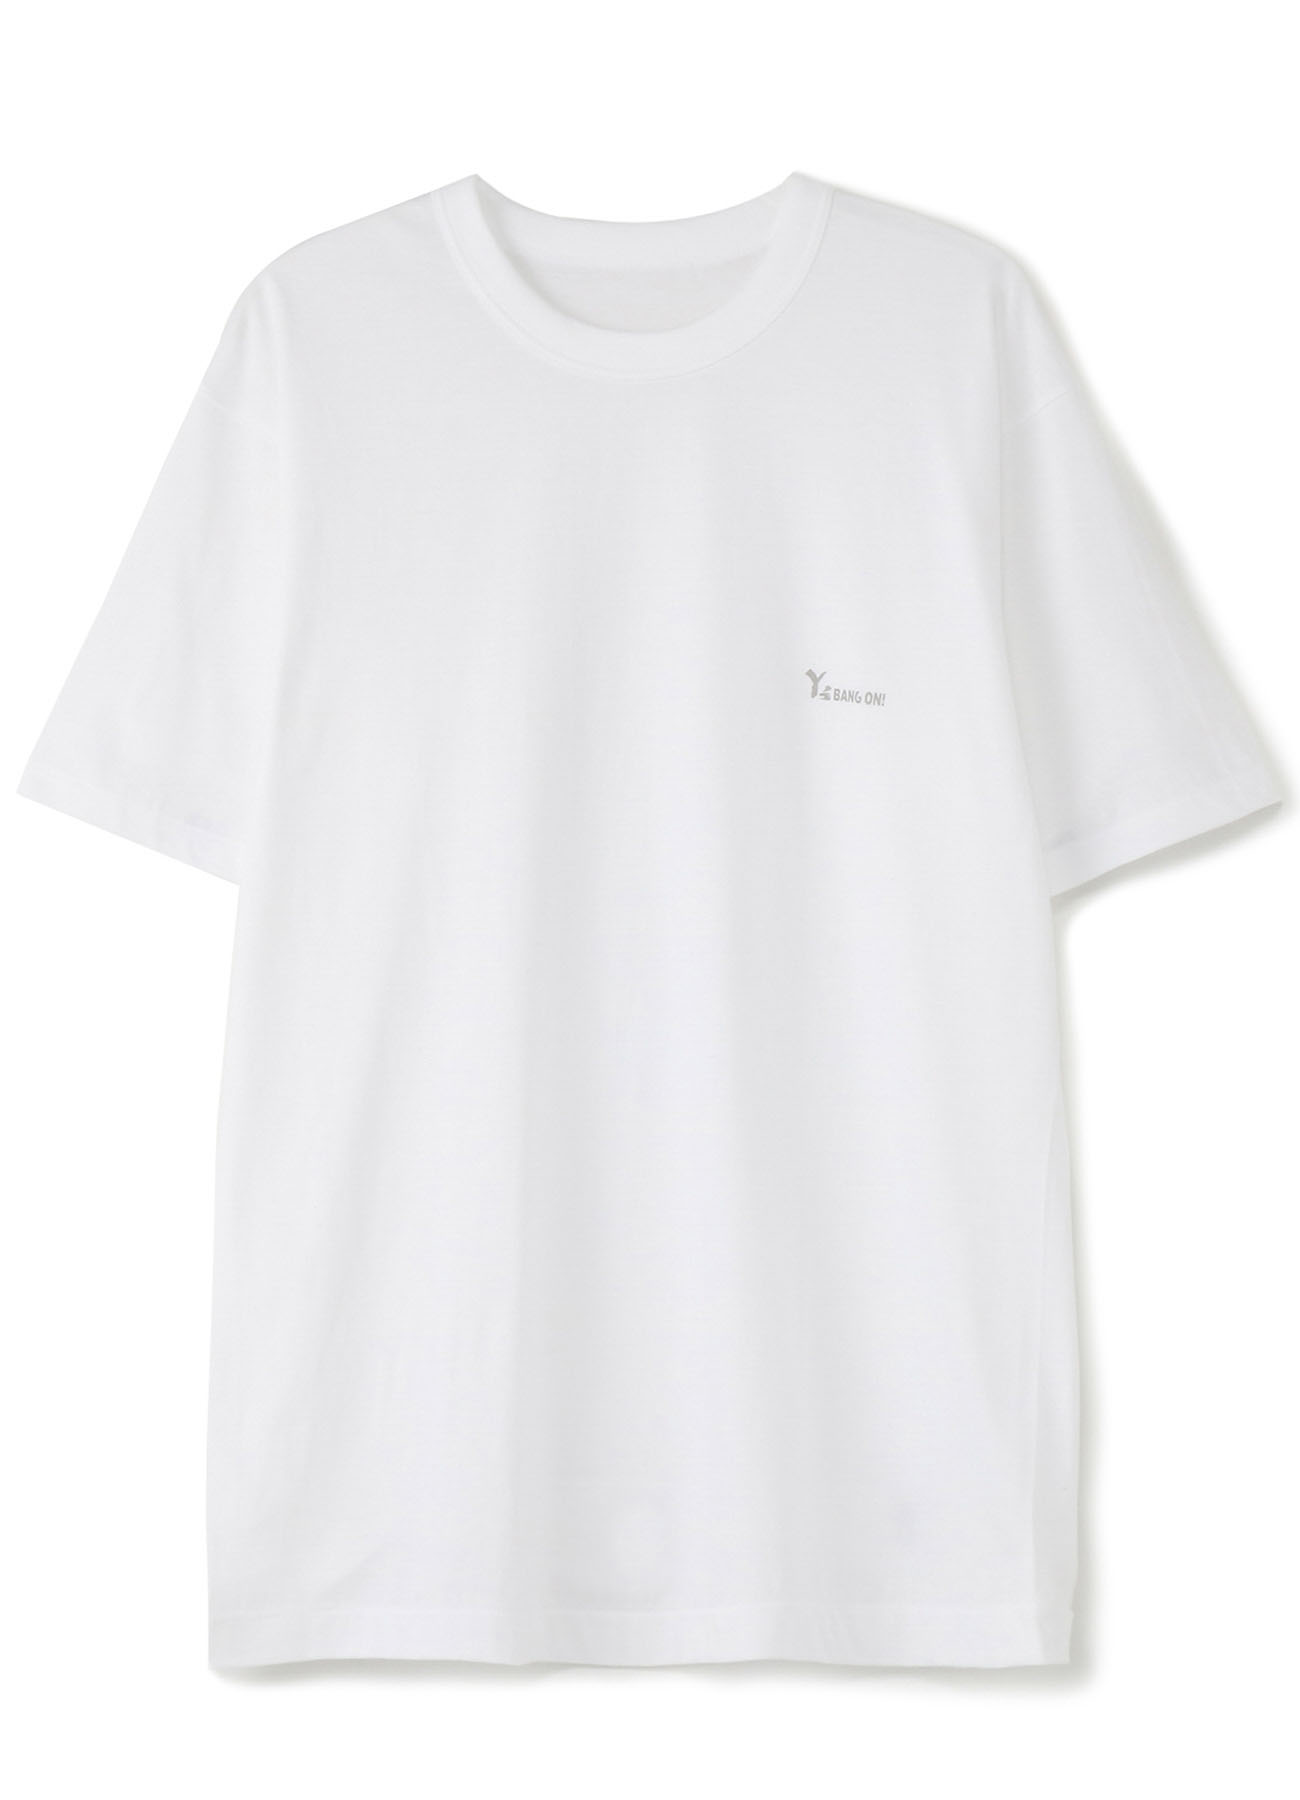 BANG ON! 3PackTシャツ